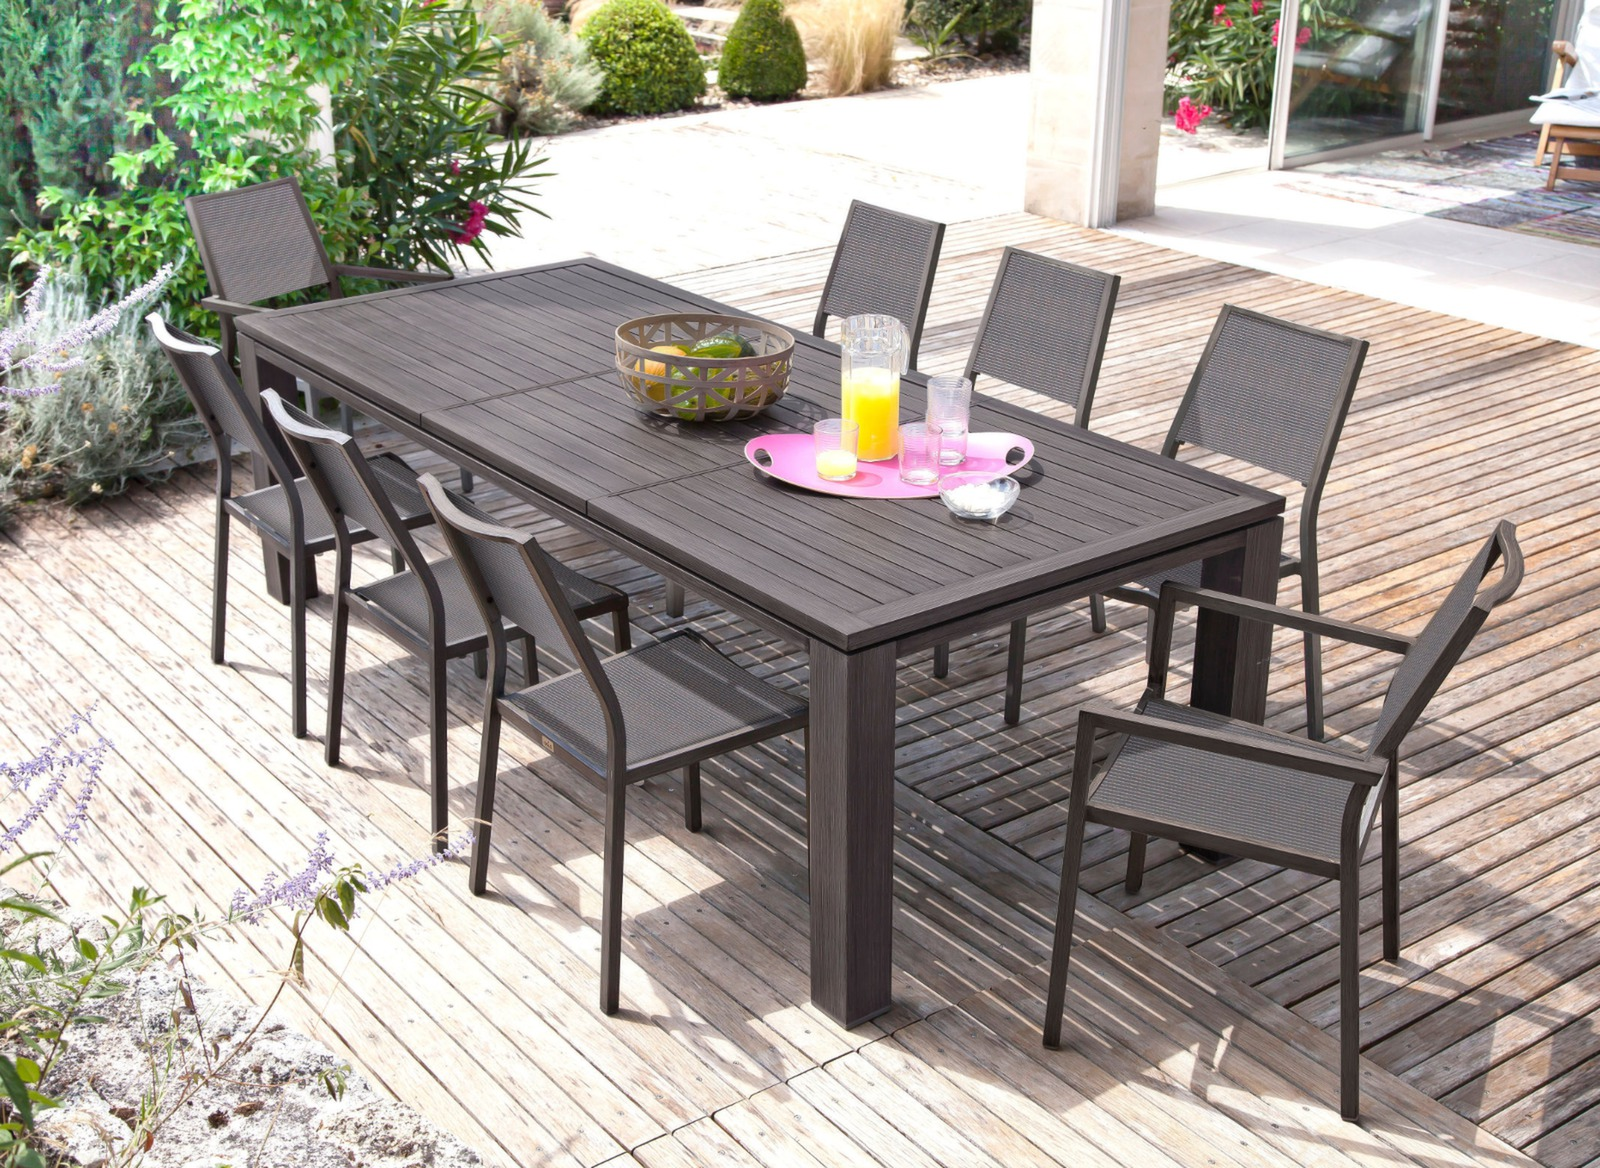 Grande table de jardin rectangle Fiero   Mobilier jardin   Proloisirs Table Fiero 200 300cm